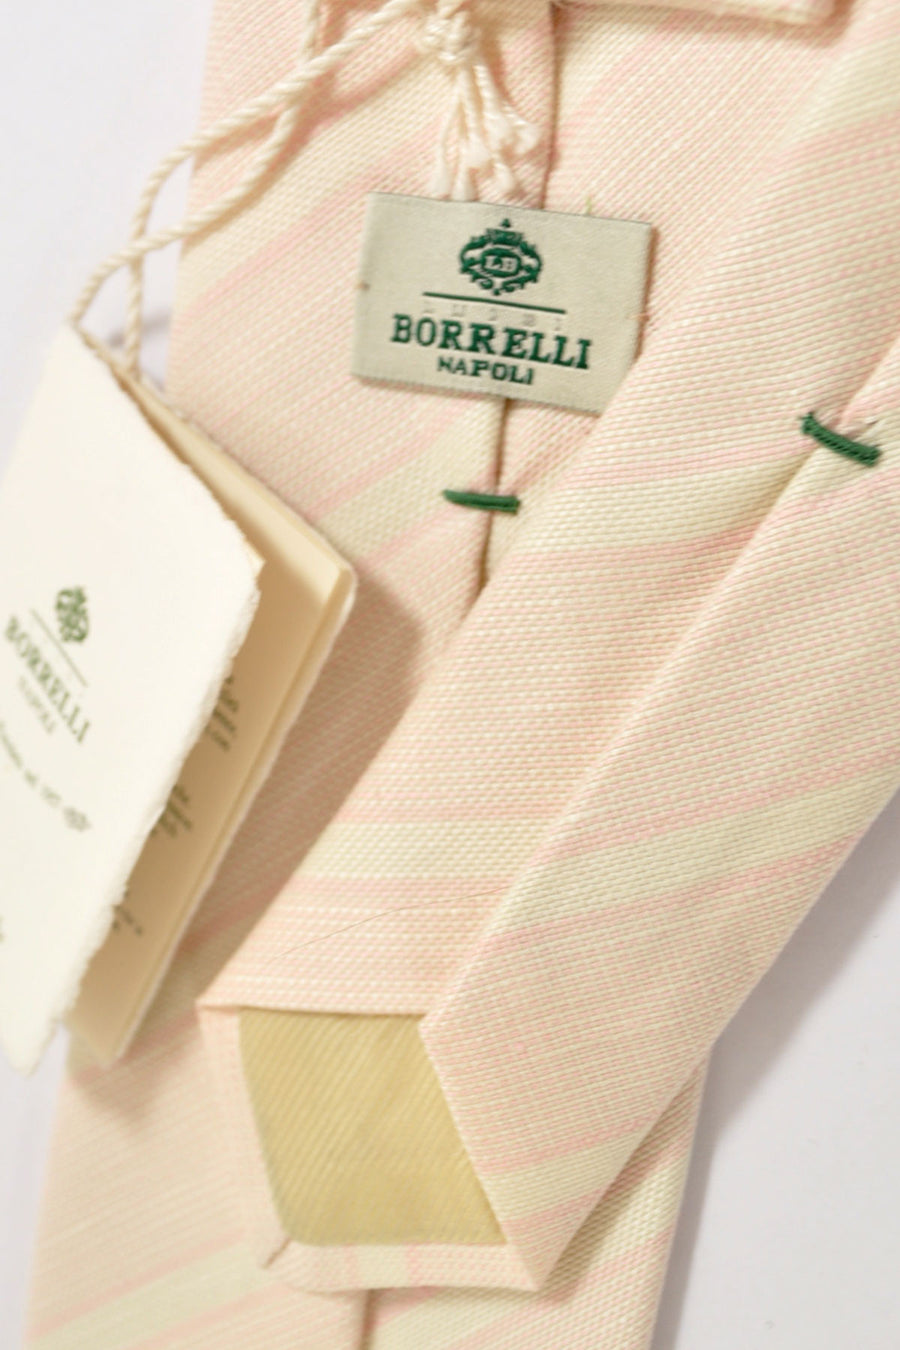 Luigi Borrelli Tie Silk Cotton Light Pink